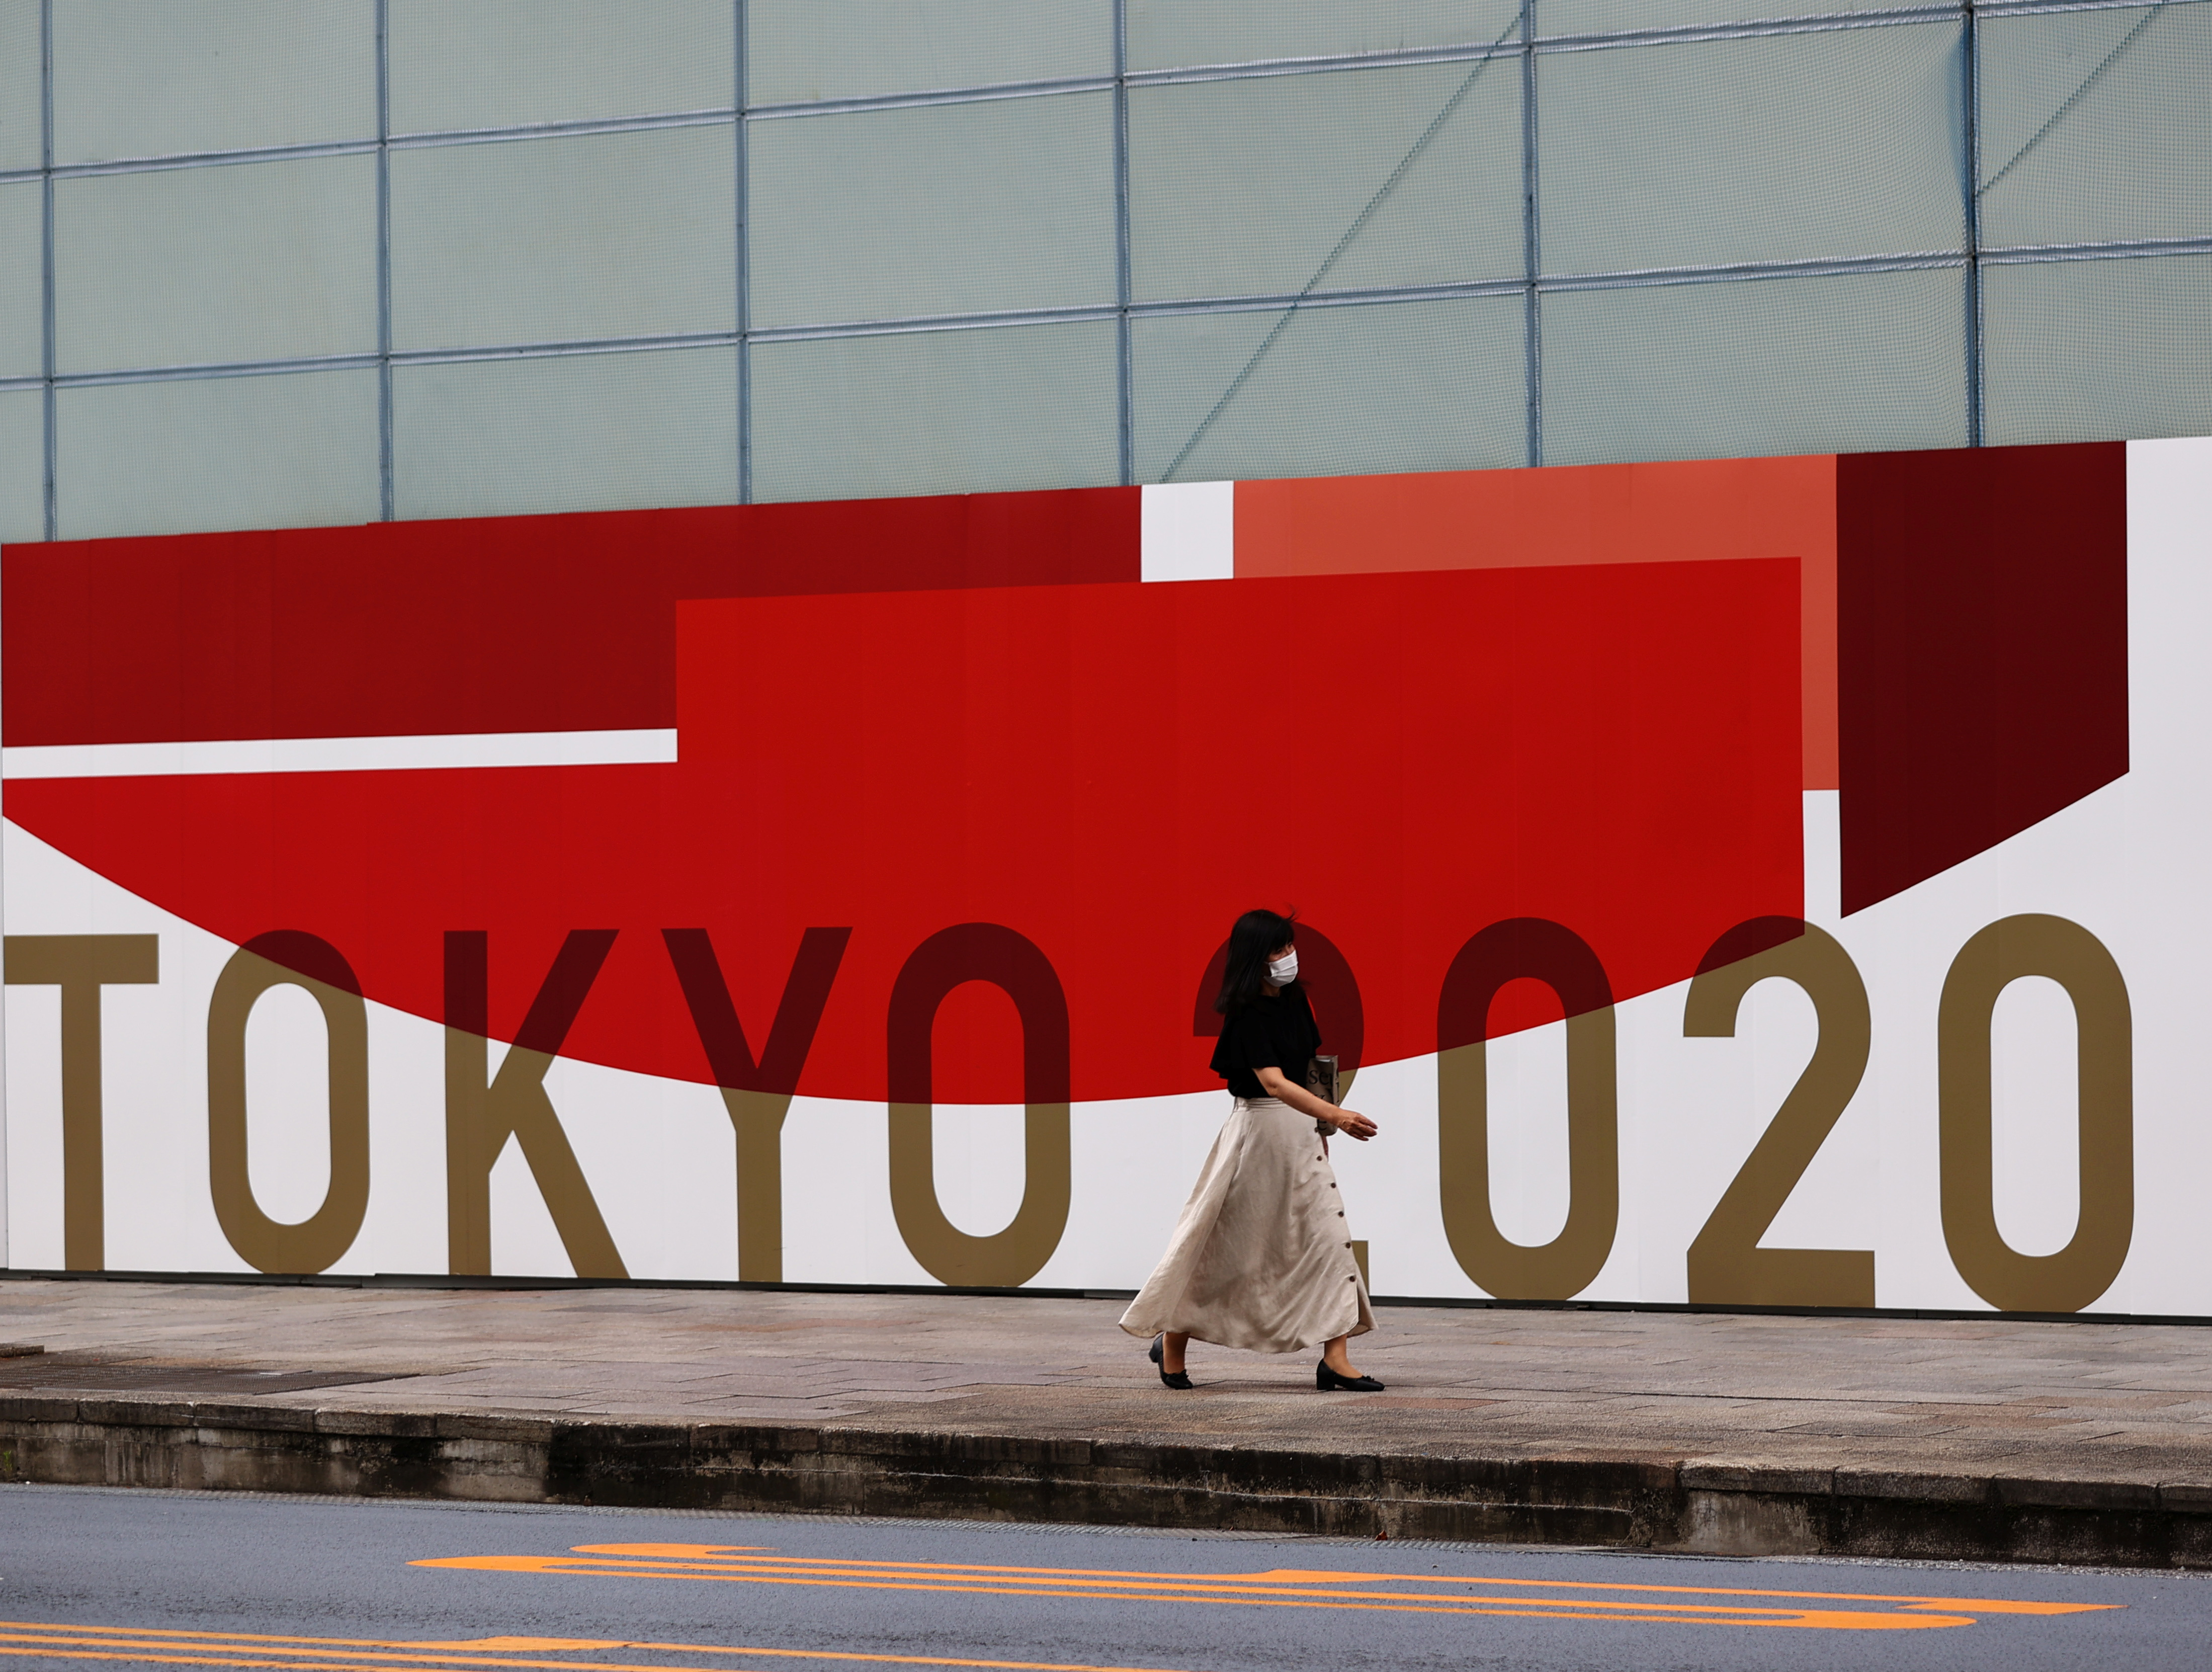 A woman, wearing a protective mask against COVID-19, walks past a wall bearing logo of Tokyo 2020 Olympic Games in Tokyo, Japan, July 29, 2021. REUTERS/Kim Kyung-Hoon